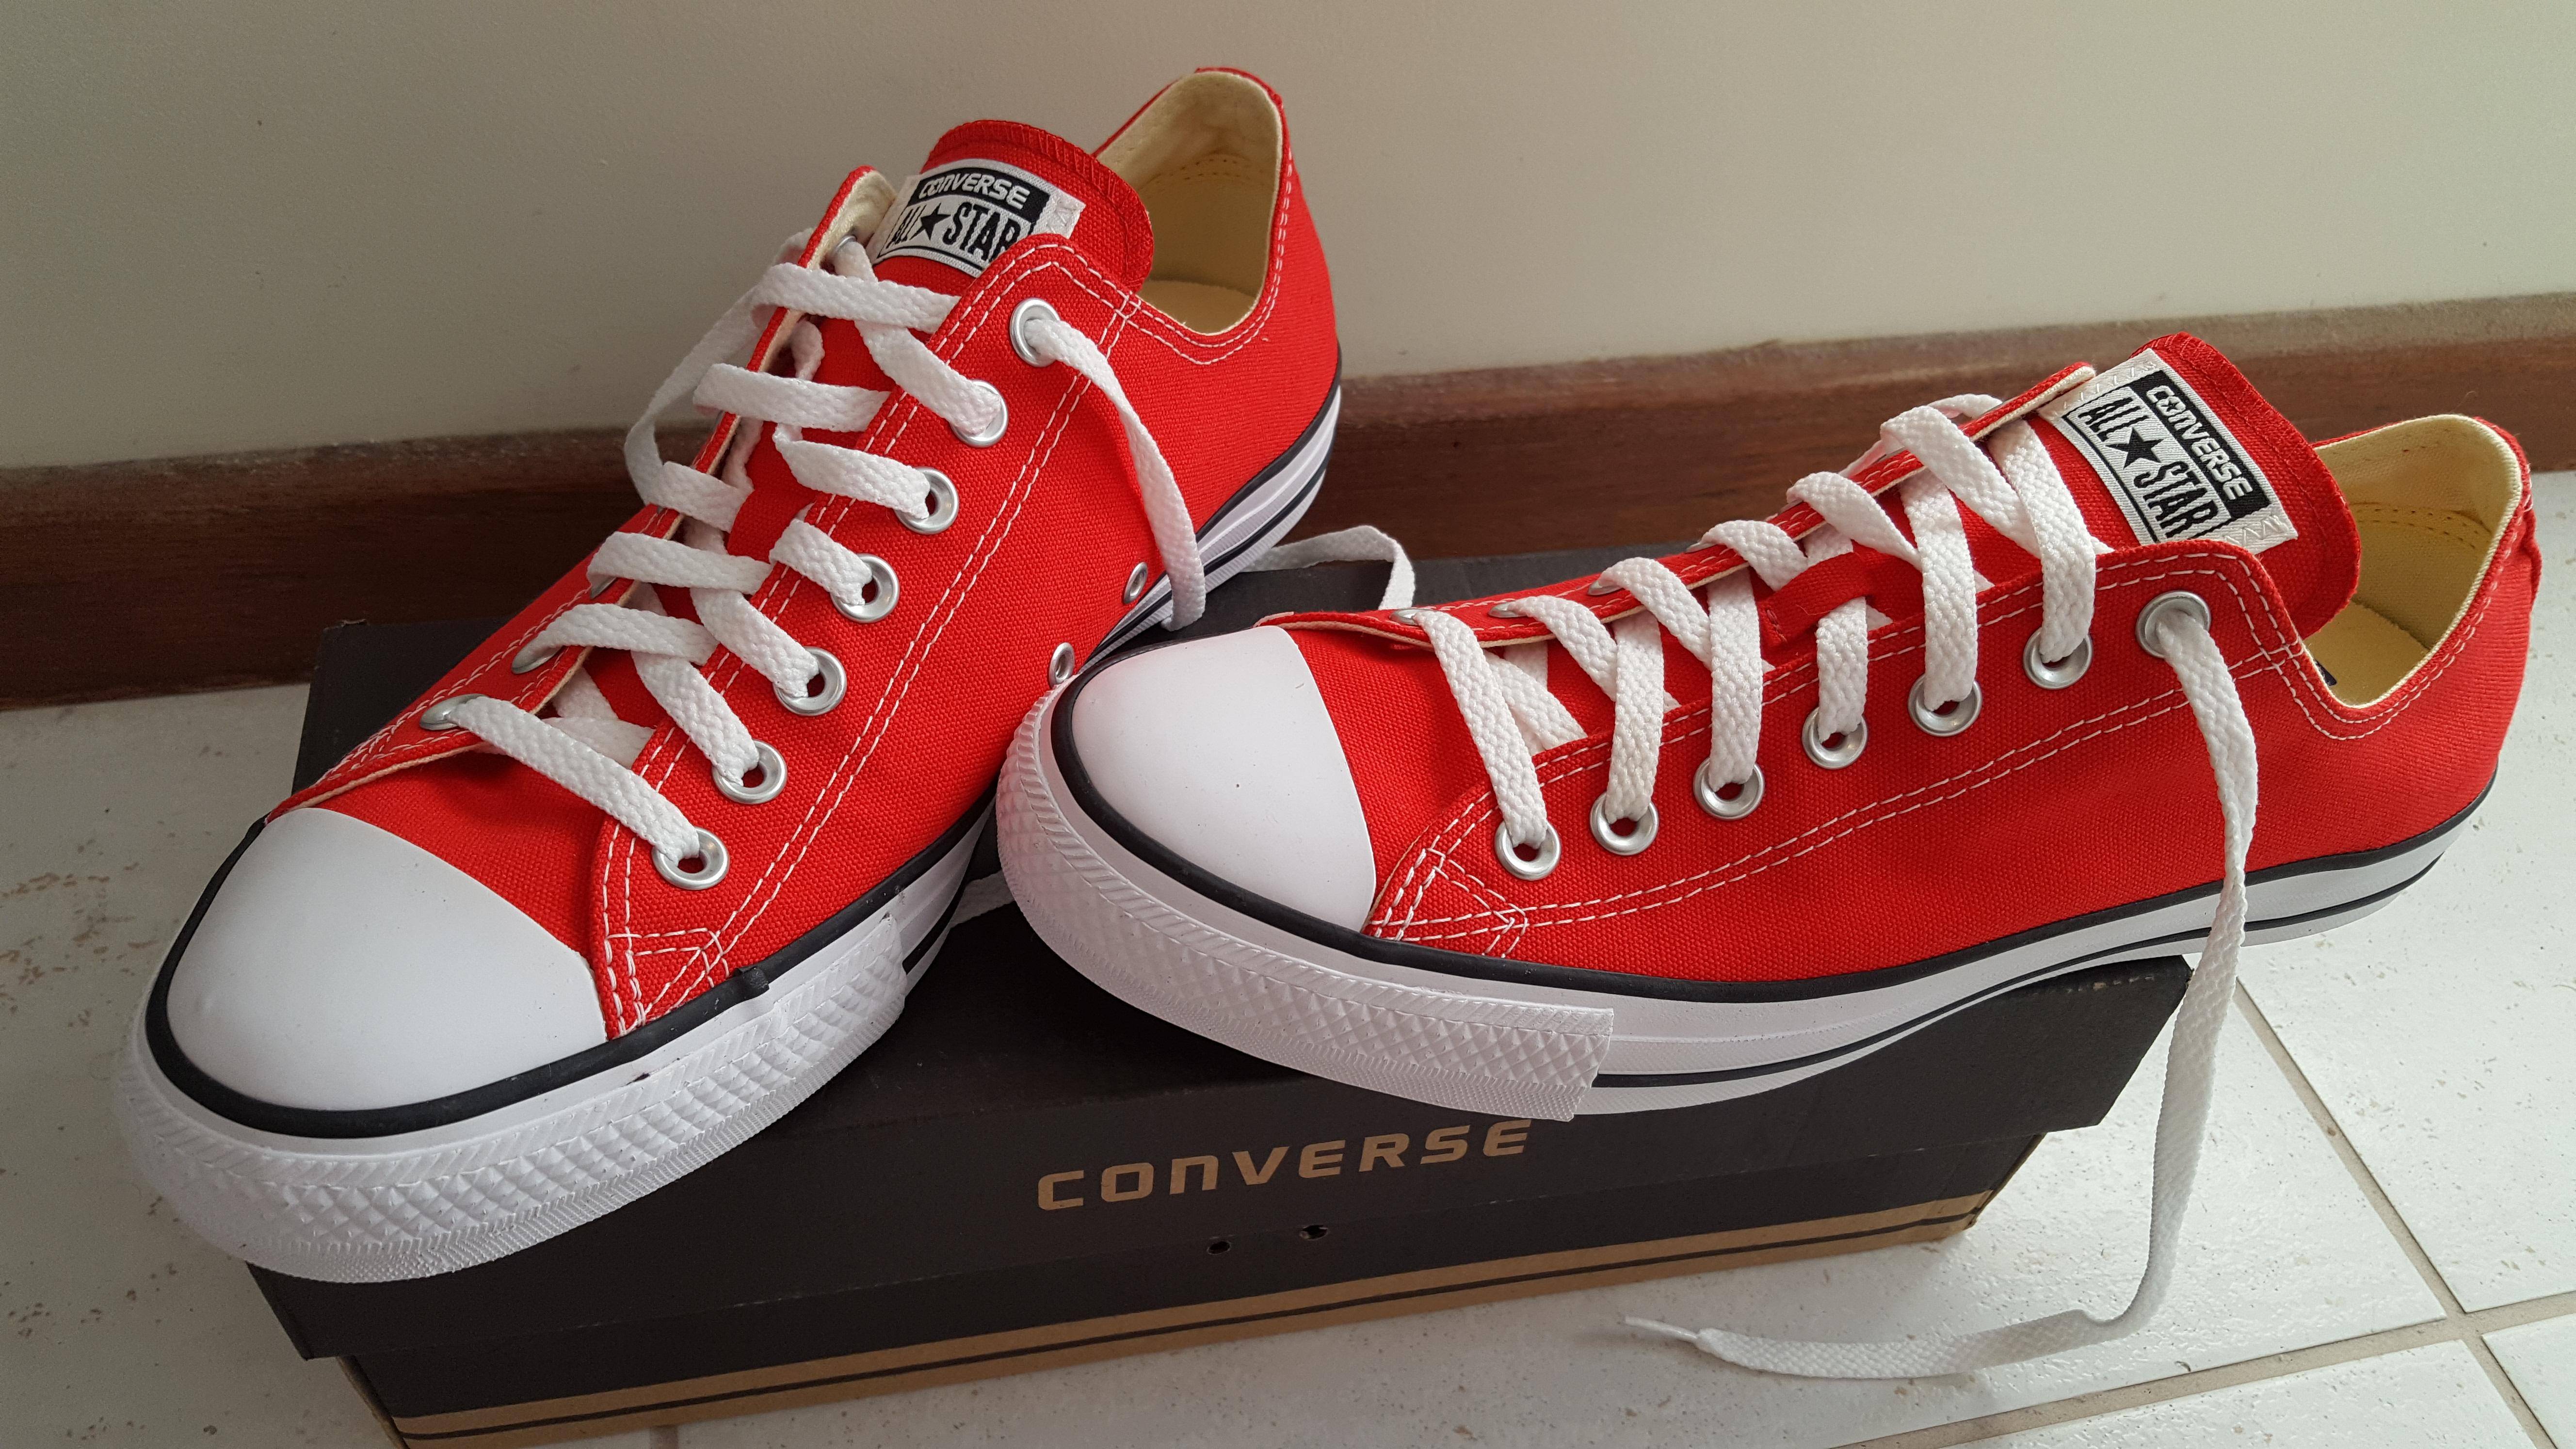 någonsin populär populära butiker nya bilder av File:Converse All Star low top red.jpg - Wikimedia Commons